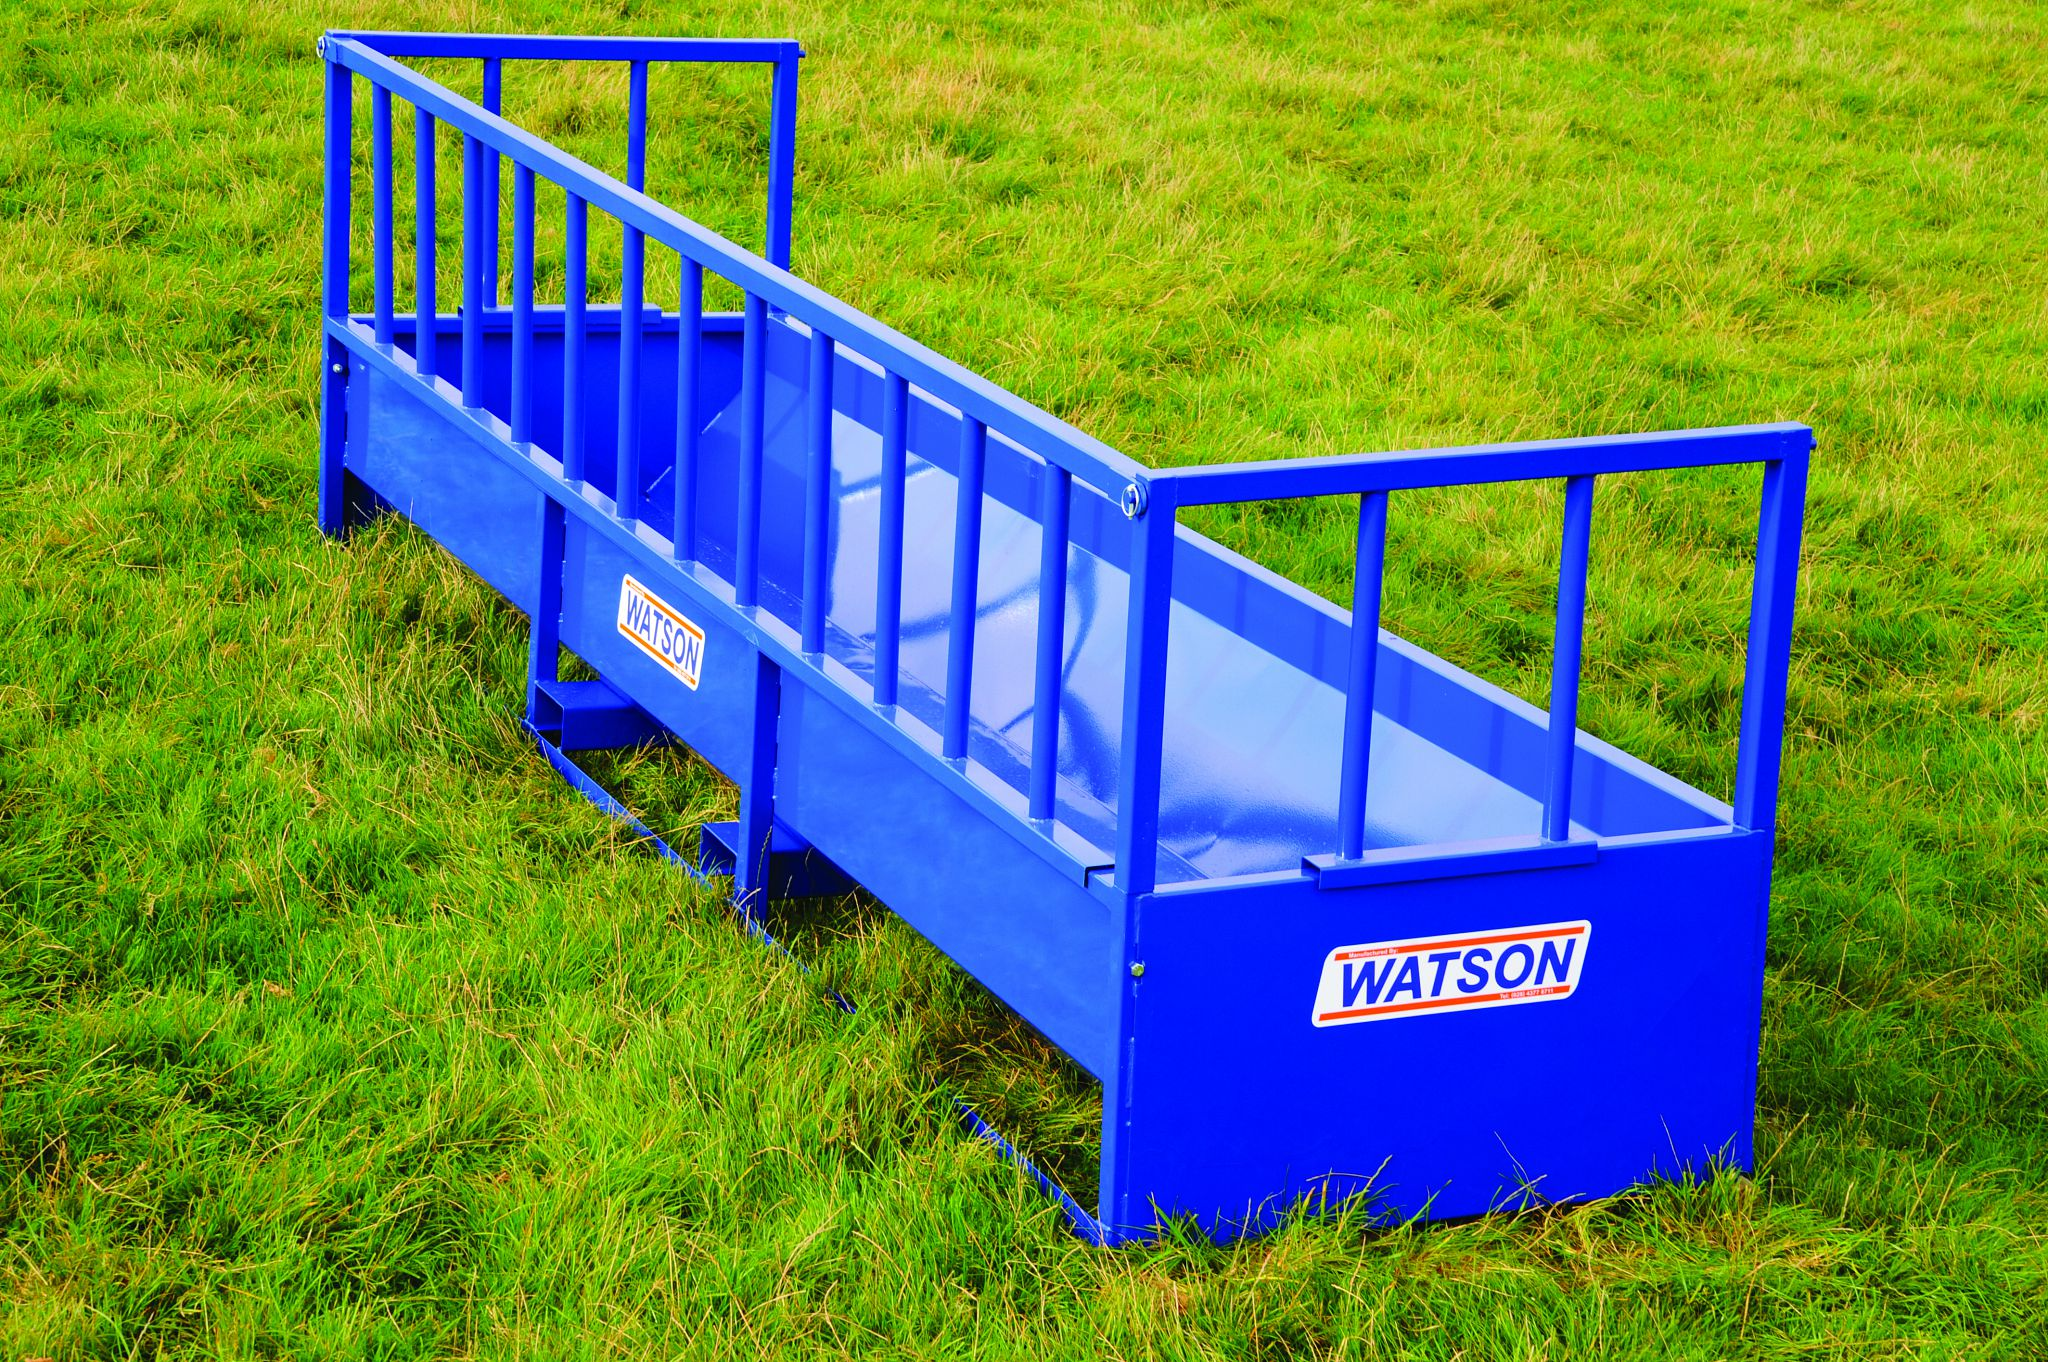 Walter Watson 15ft Barrier Trough Feeder